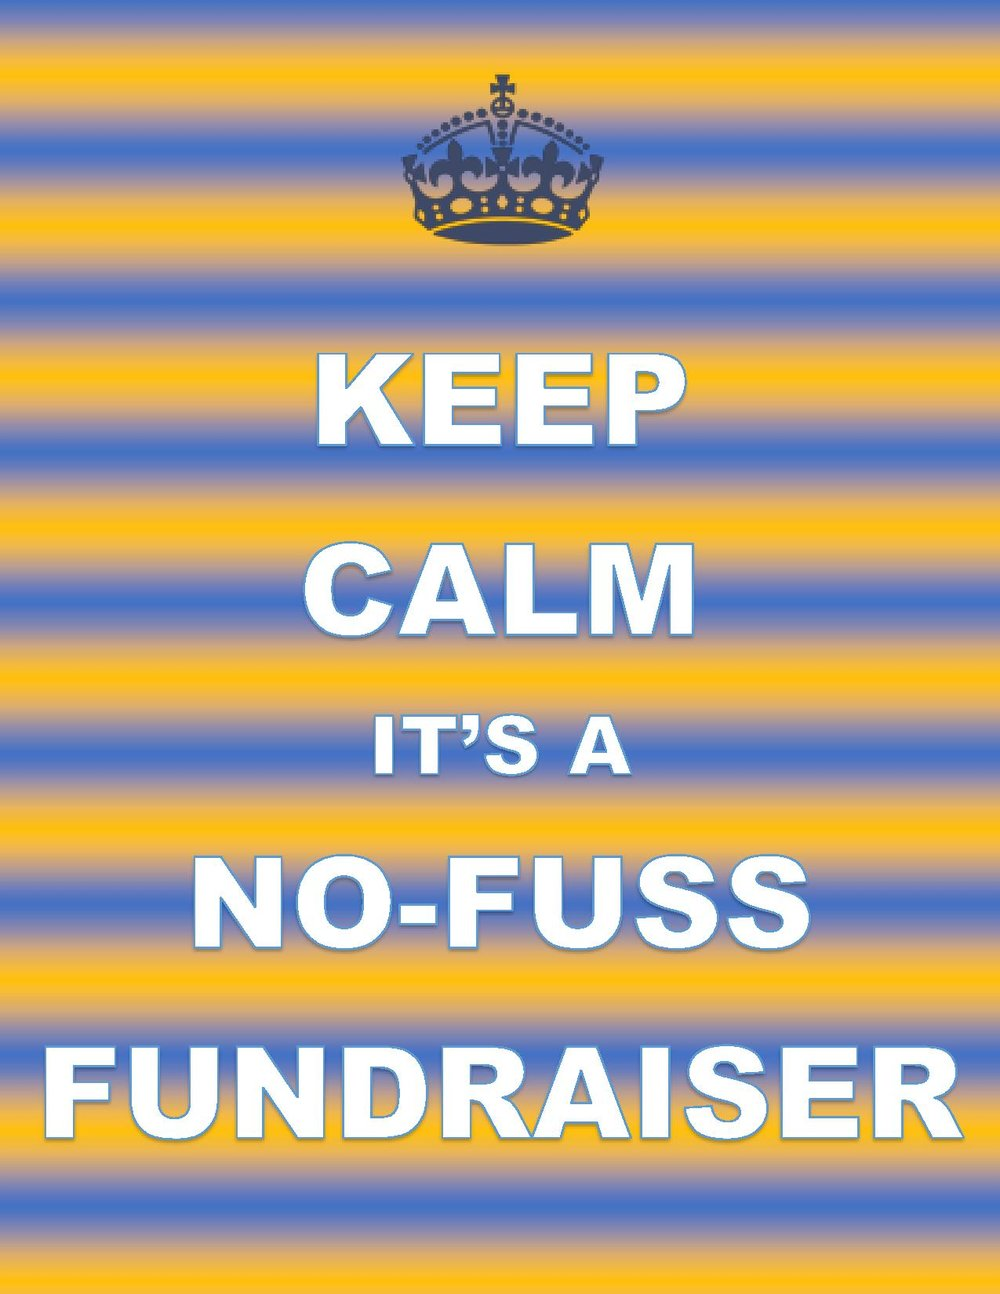 No-Fuss Fundraiser (Blue and Gold).jpg